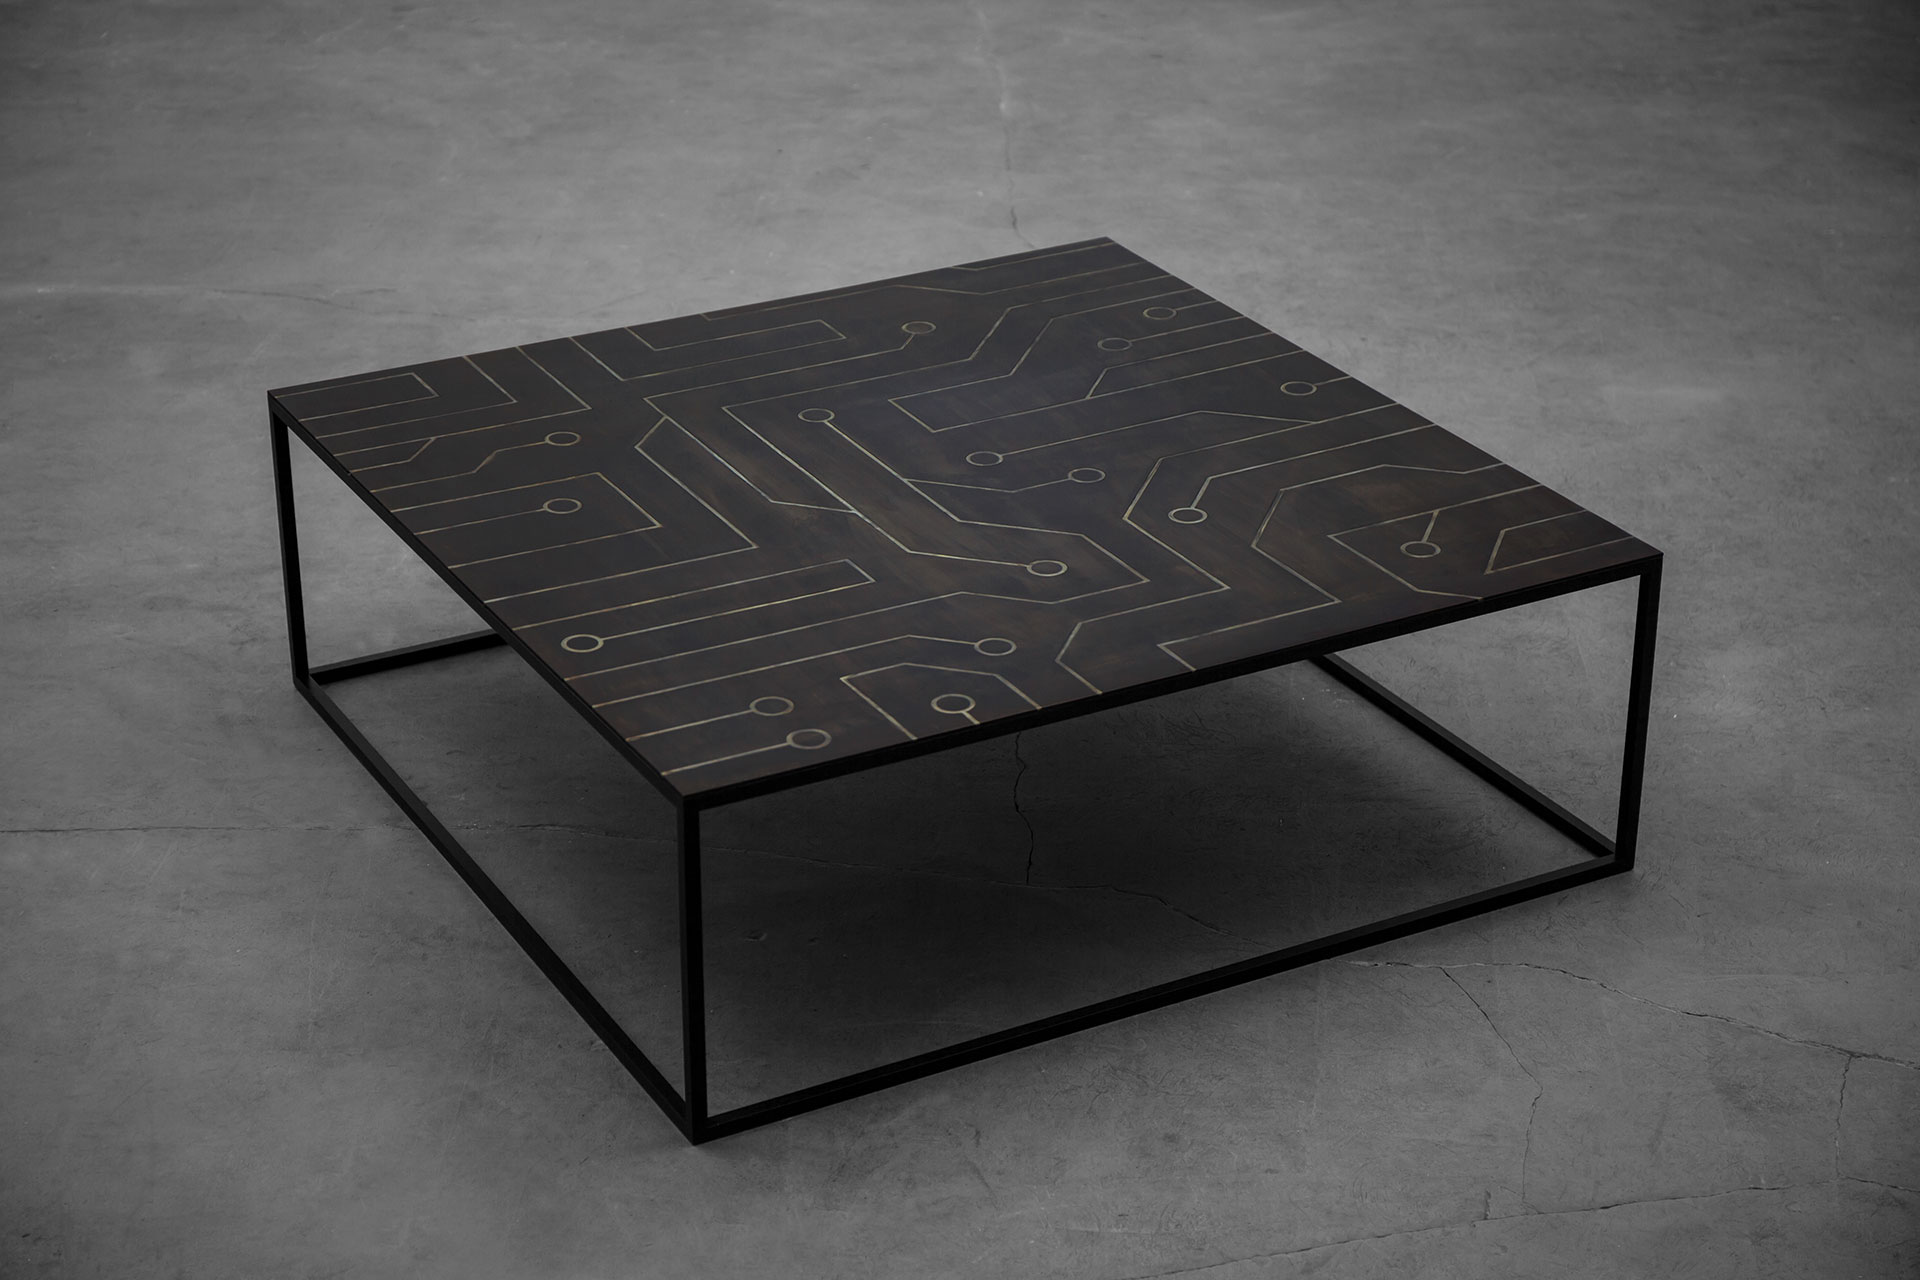 Futuristic design coffee table inspired by integrated circuit